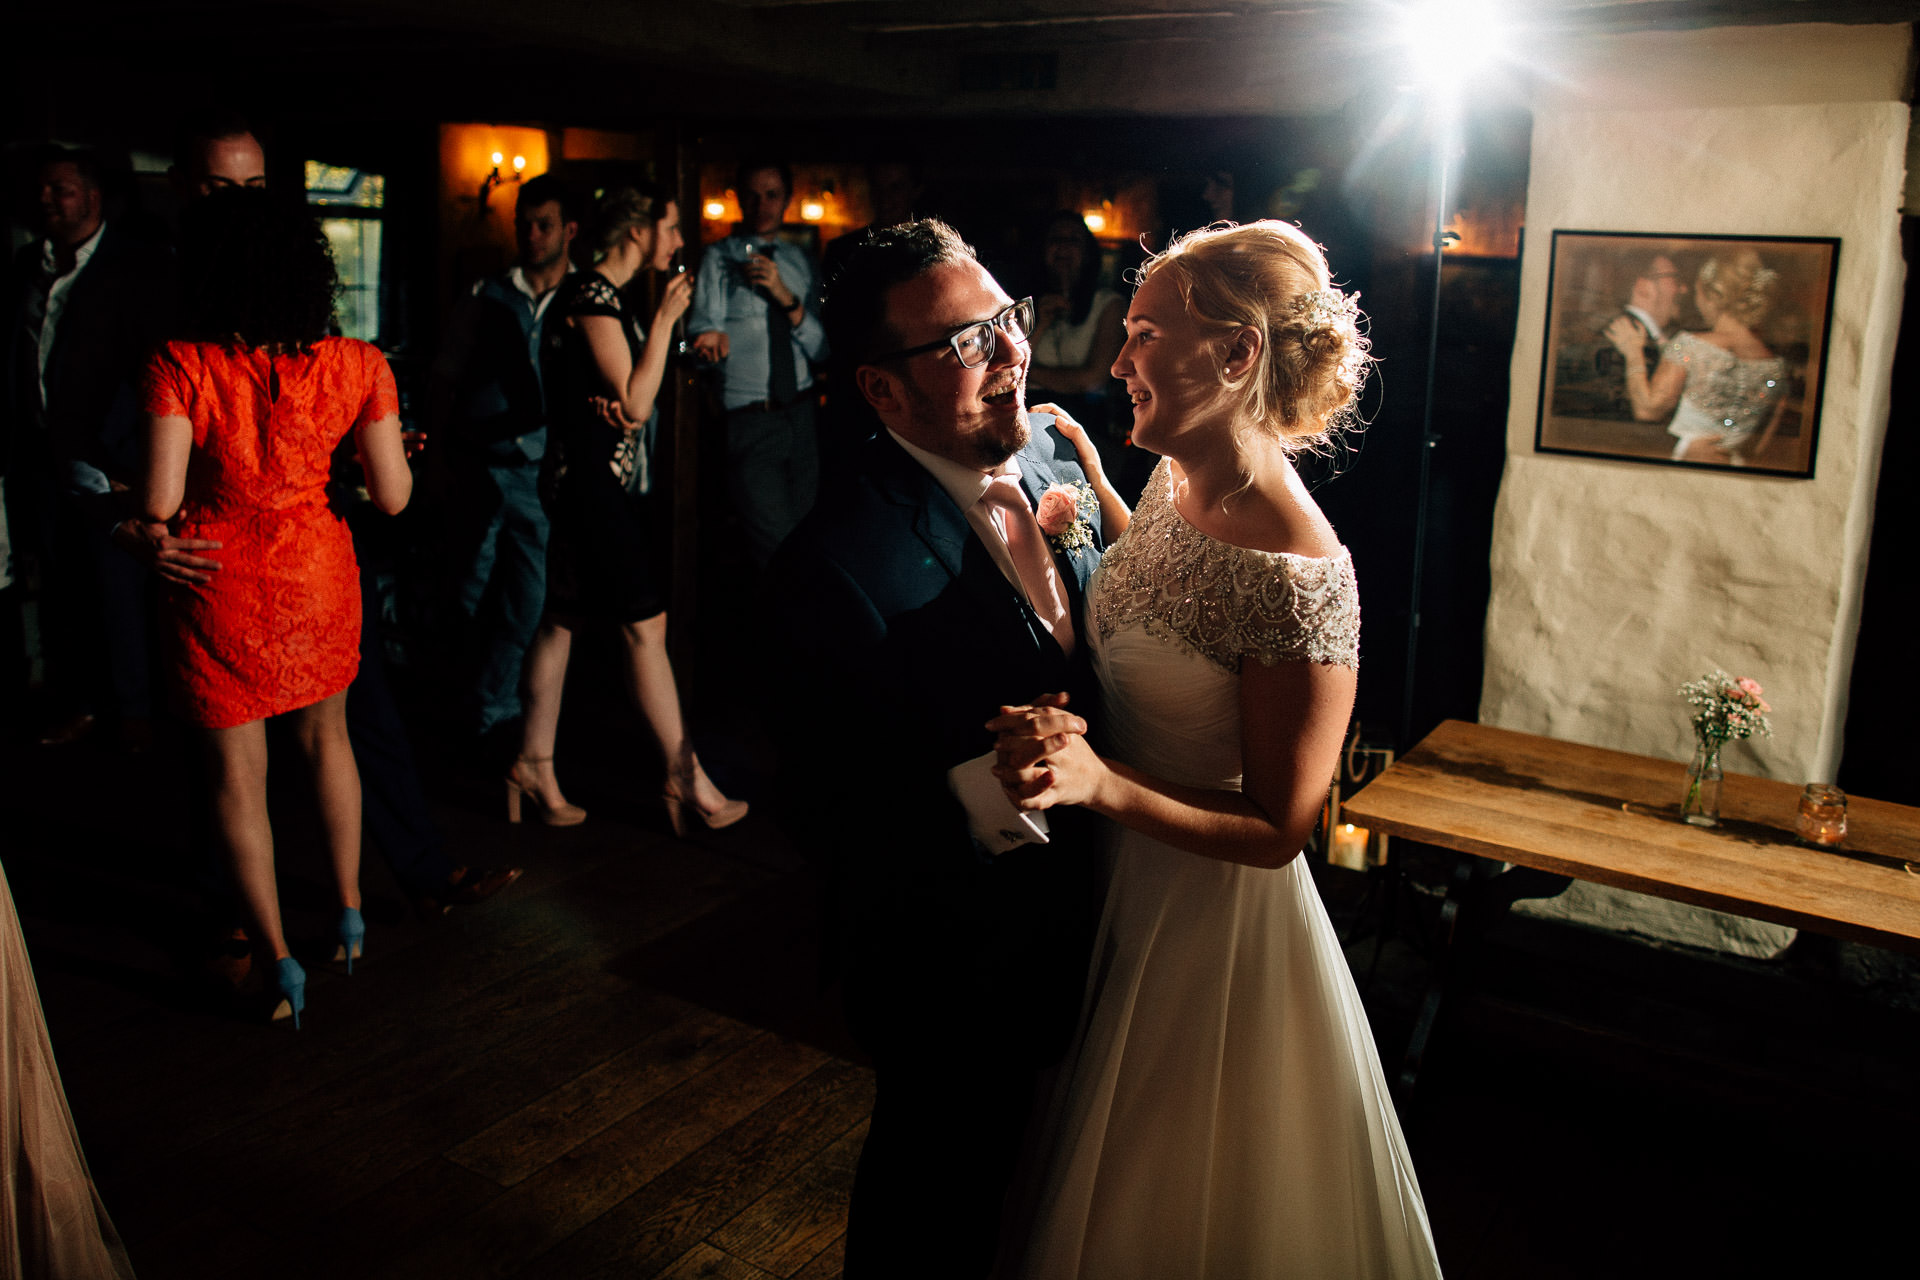 The Wild Boar Wedding Photography - EM - couples first dance - close in